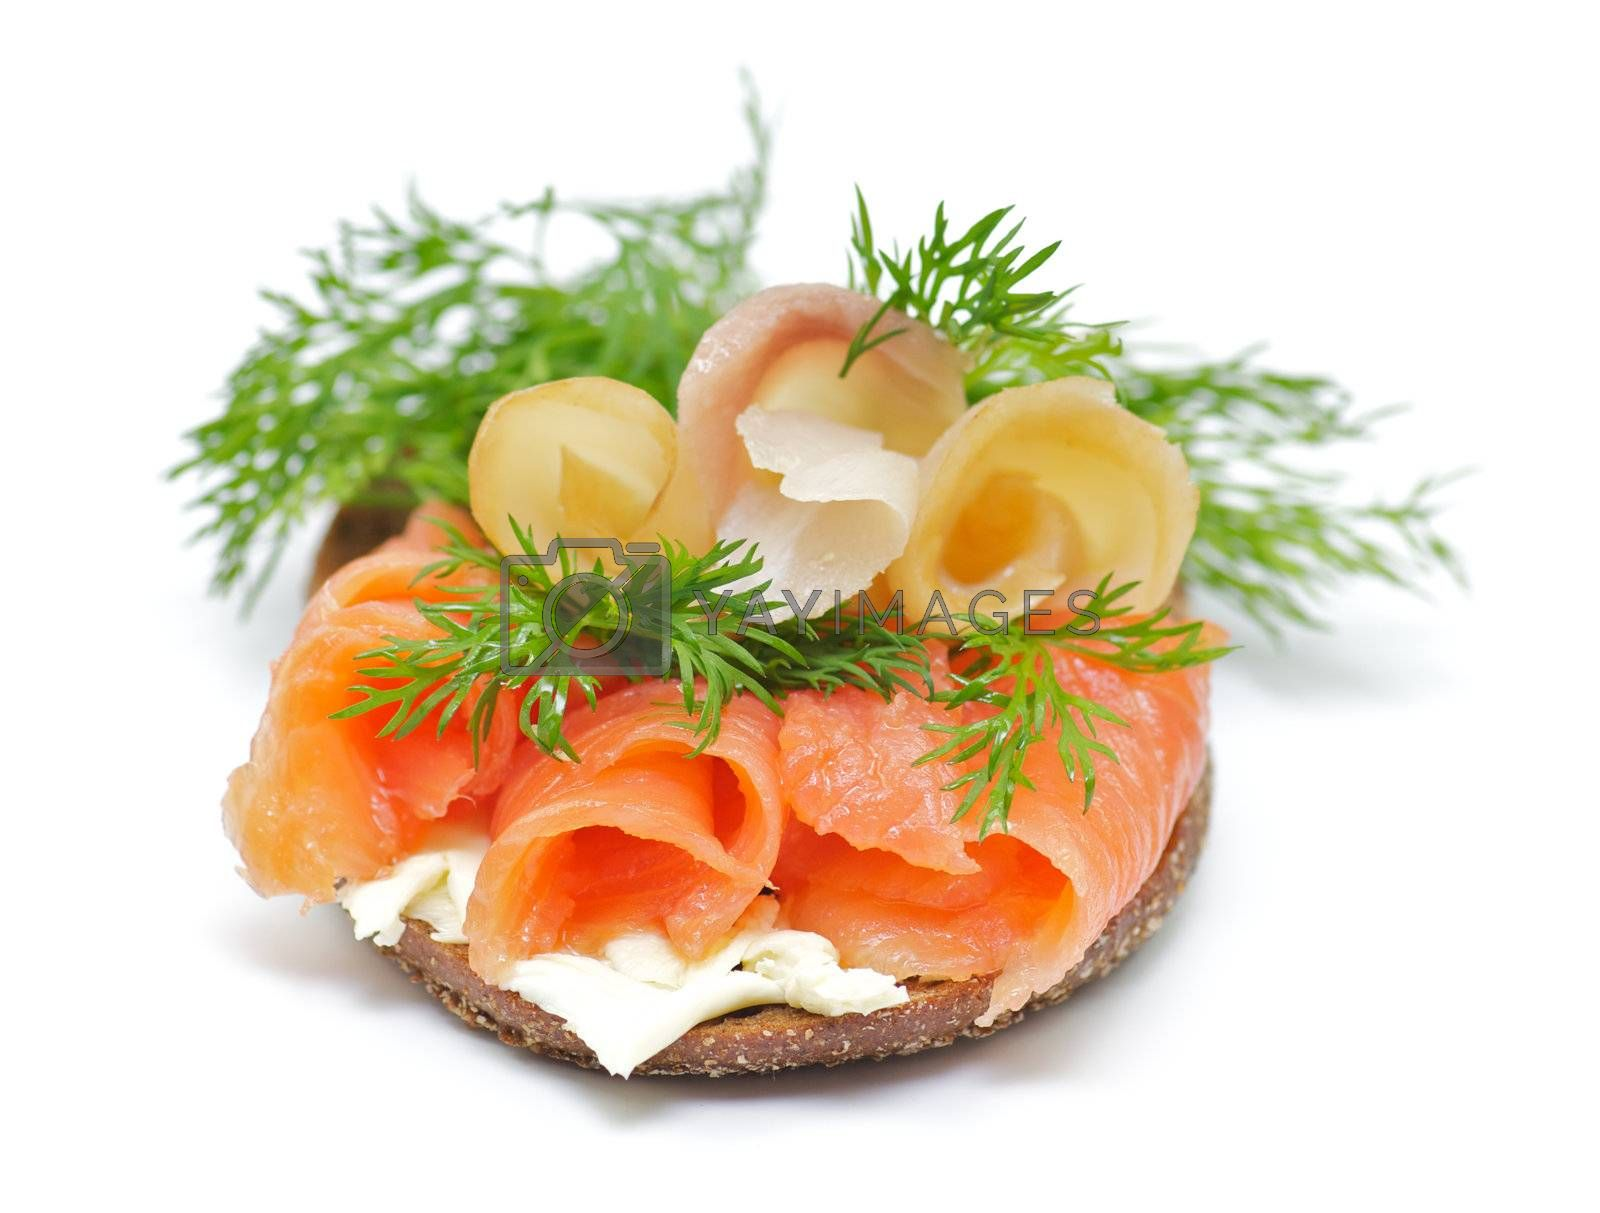 Sandwich with Smoked Salmon and Sturgeon, Cheese Crème and Dill